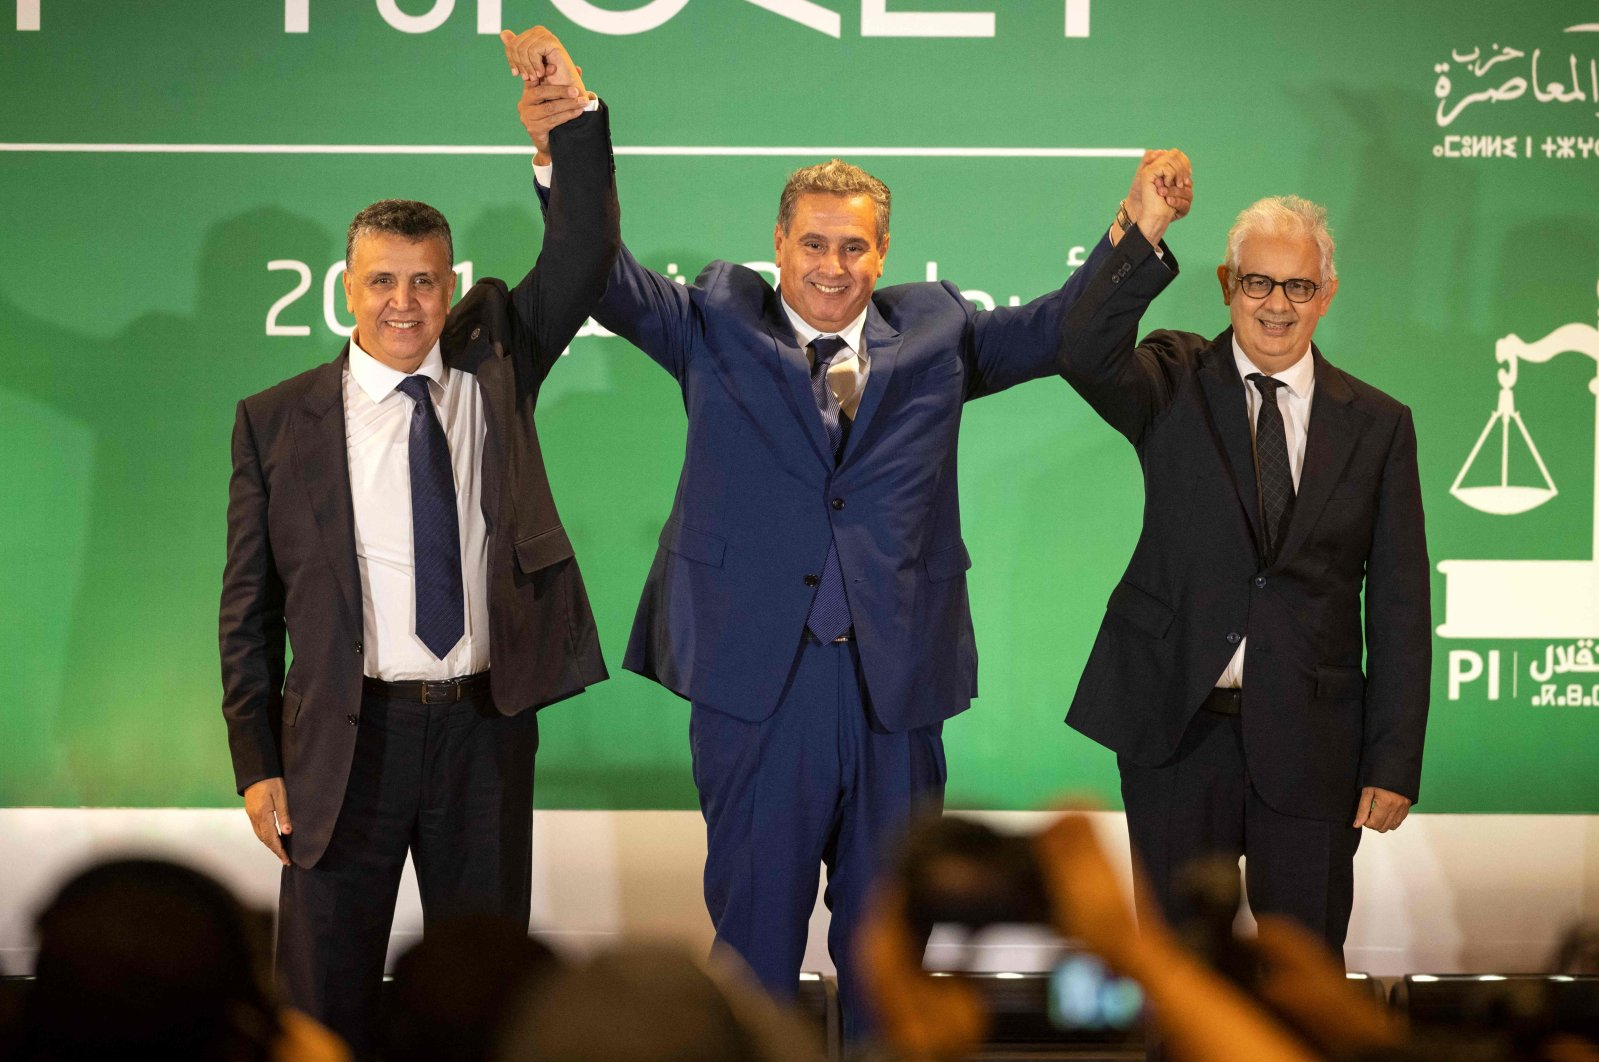 Morocco's prime minister-designate Aziz Akhannouch (C), Abdellatif Ouahbi (L), president of Morocco's Authenticity and Modernity Party (PAM), and Nizar Baraka (R), president of the Istiqlal Party (R), after Akhannouch announced a coalition of RNI, PAM and Istiqlal, Rabat, Morocco, Sept. 22, 2021. (AFP Photo)